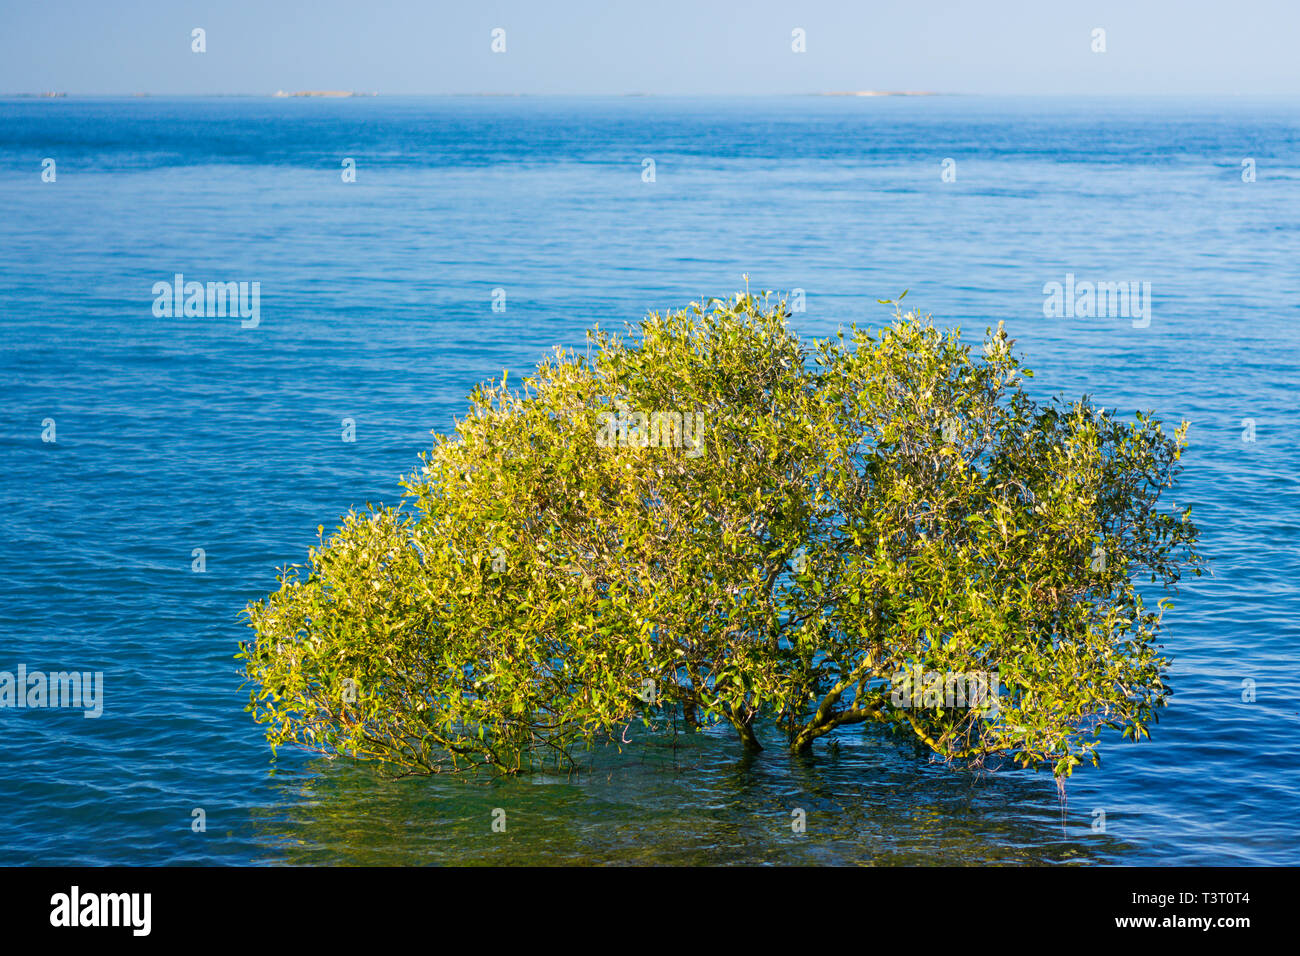 Grey mangroves (Avicennia marina) at high tide growing on rocky shoreline Cape Leveque, Western Australia - Stock Image